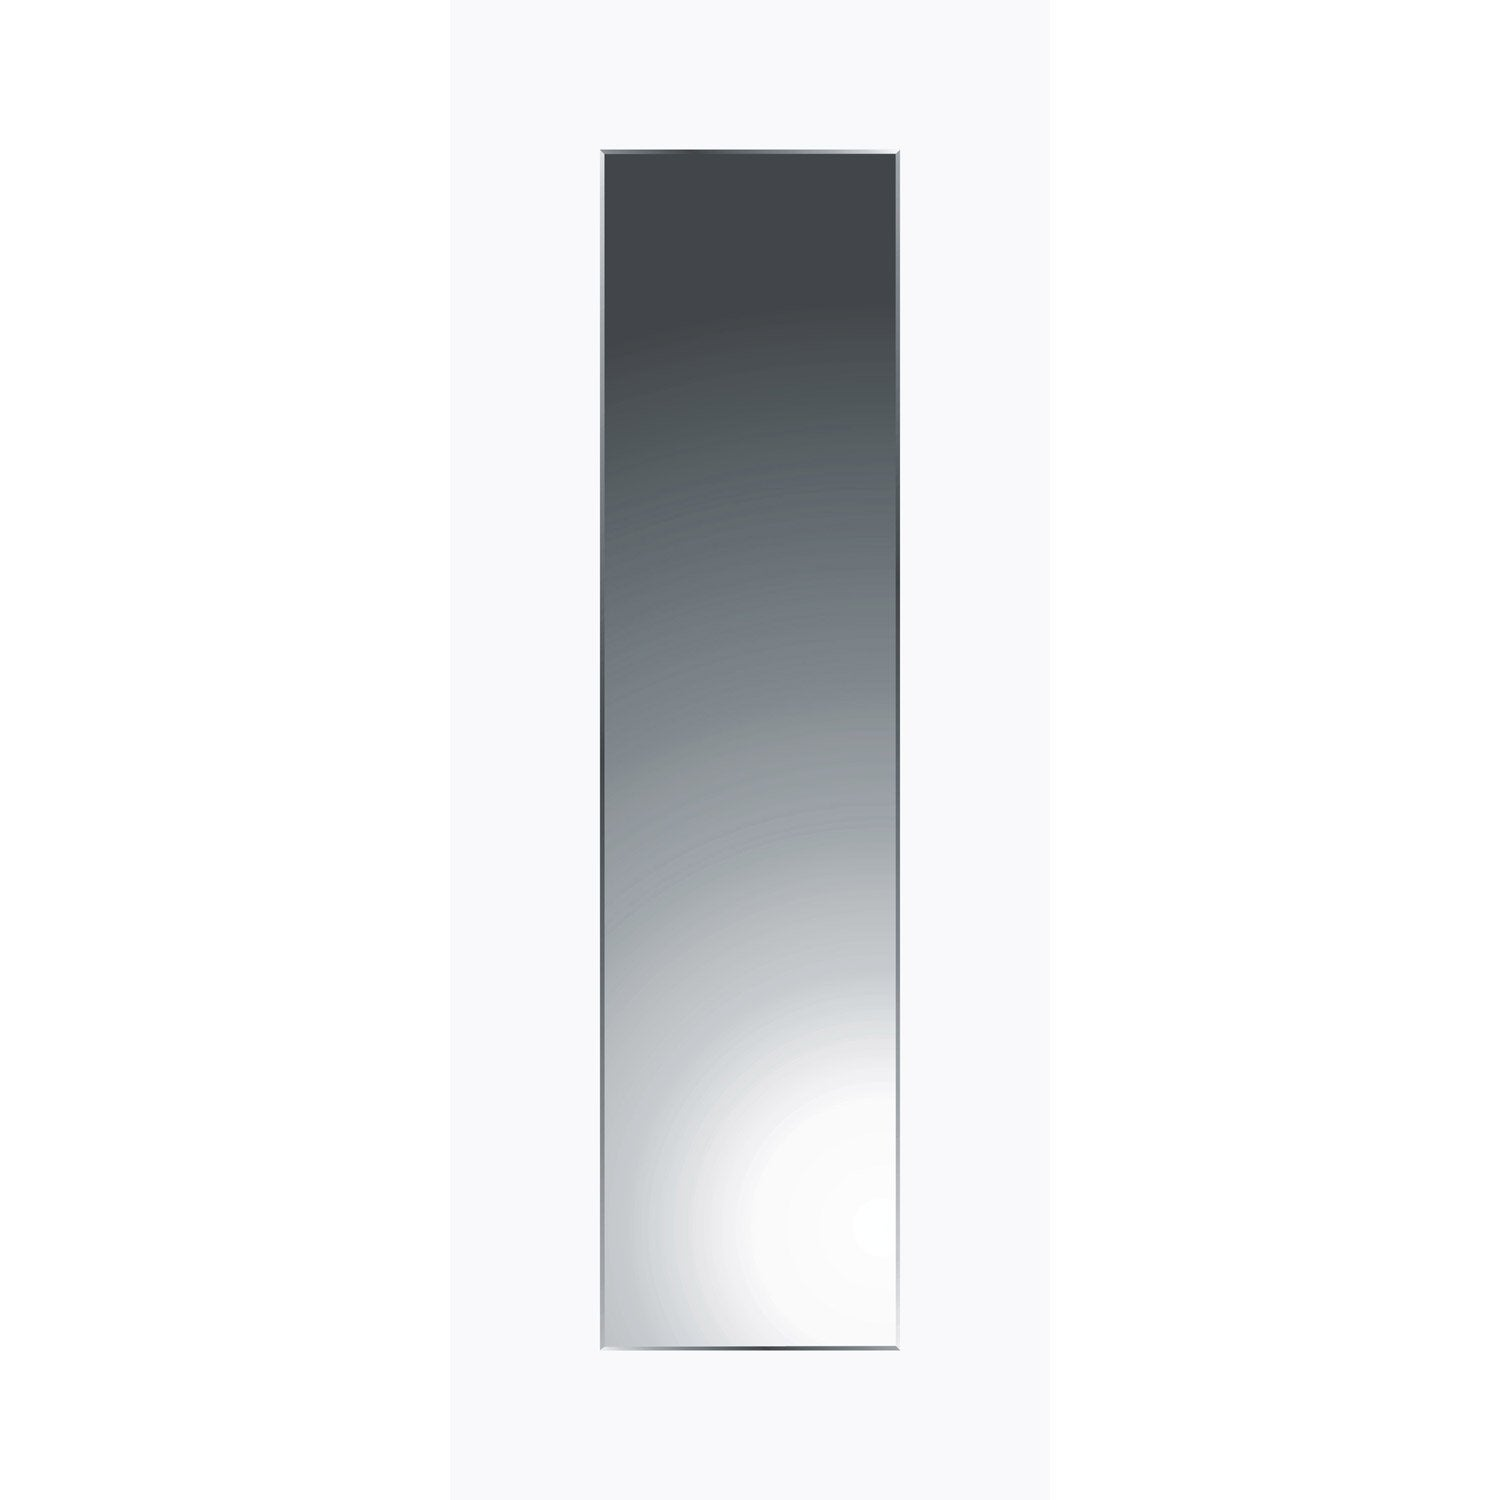 Miroir rectangle biseau sensea 120 x 30 cm leroy merlin - Leroy merlin miroir grossissant ...